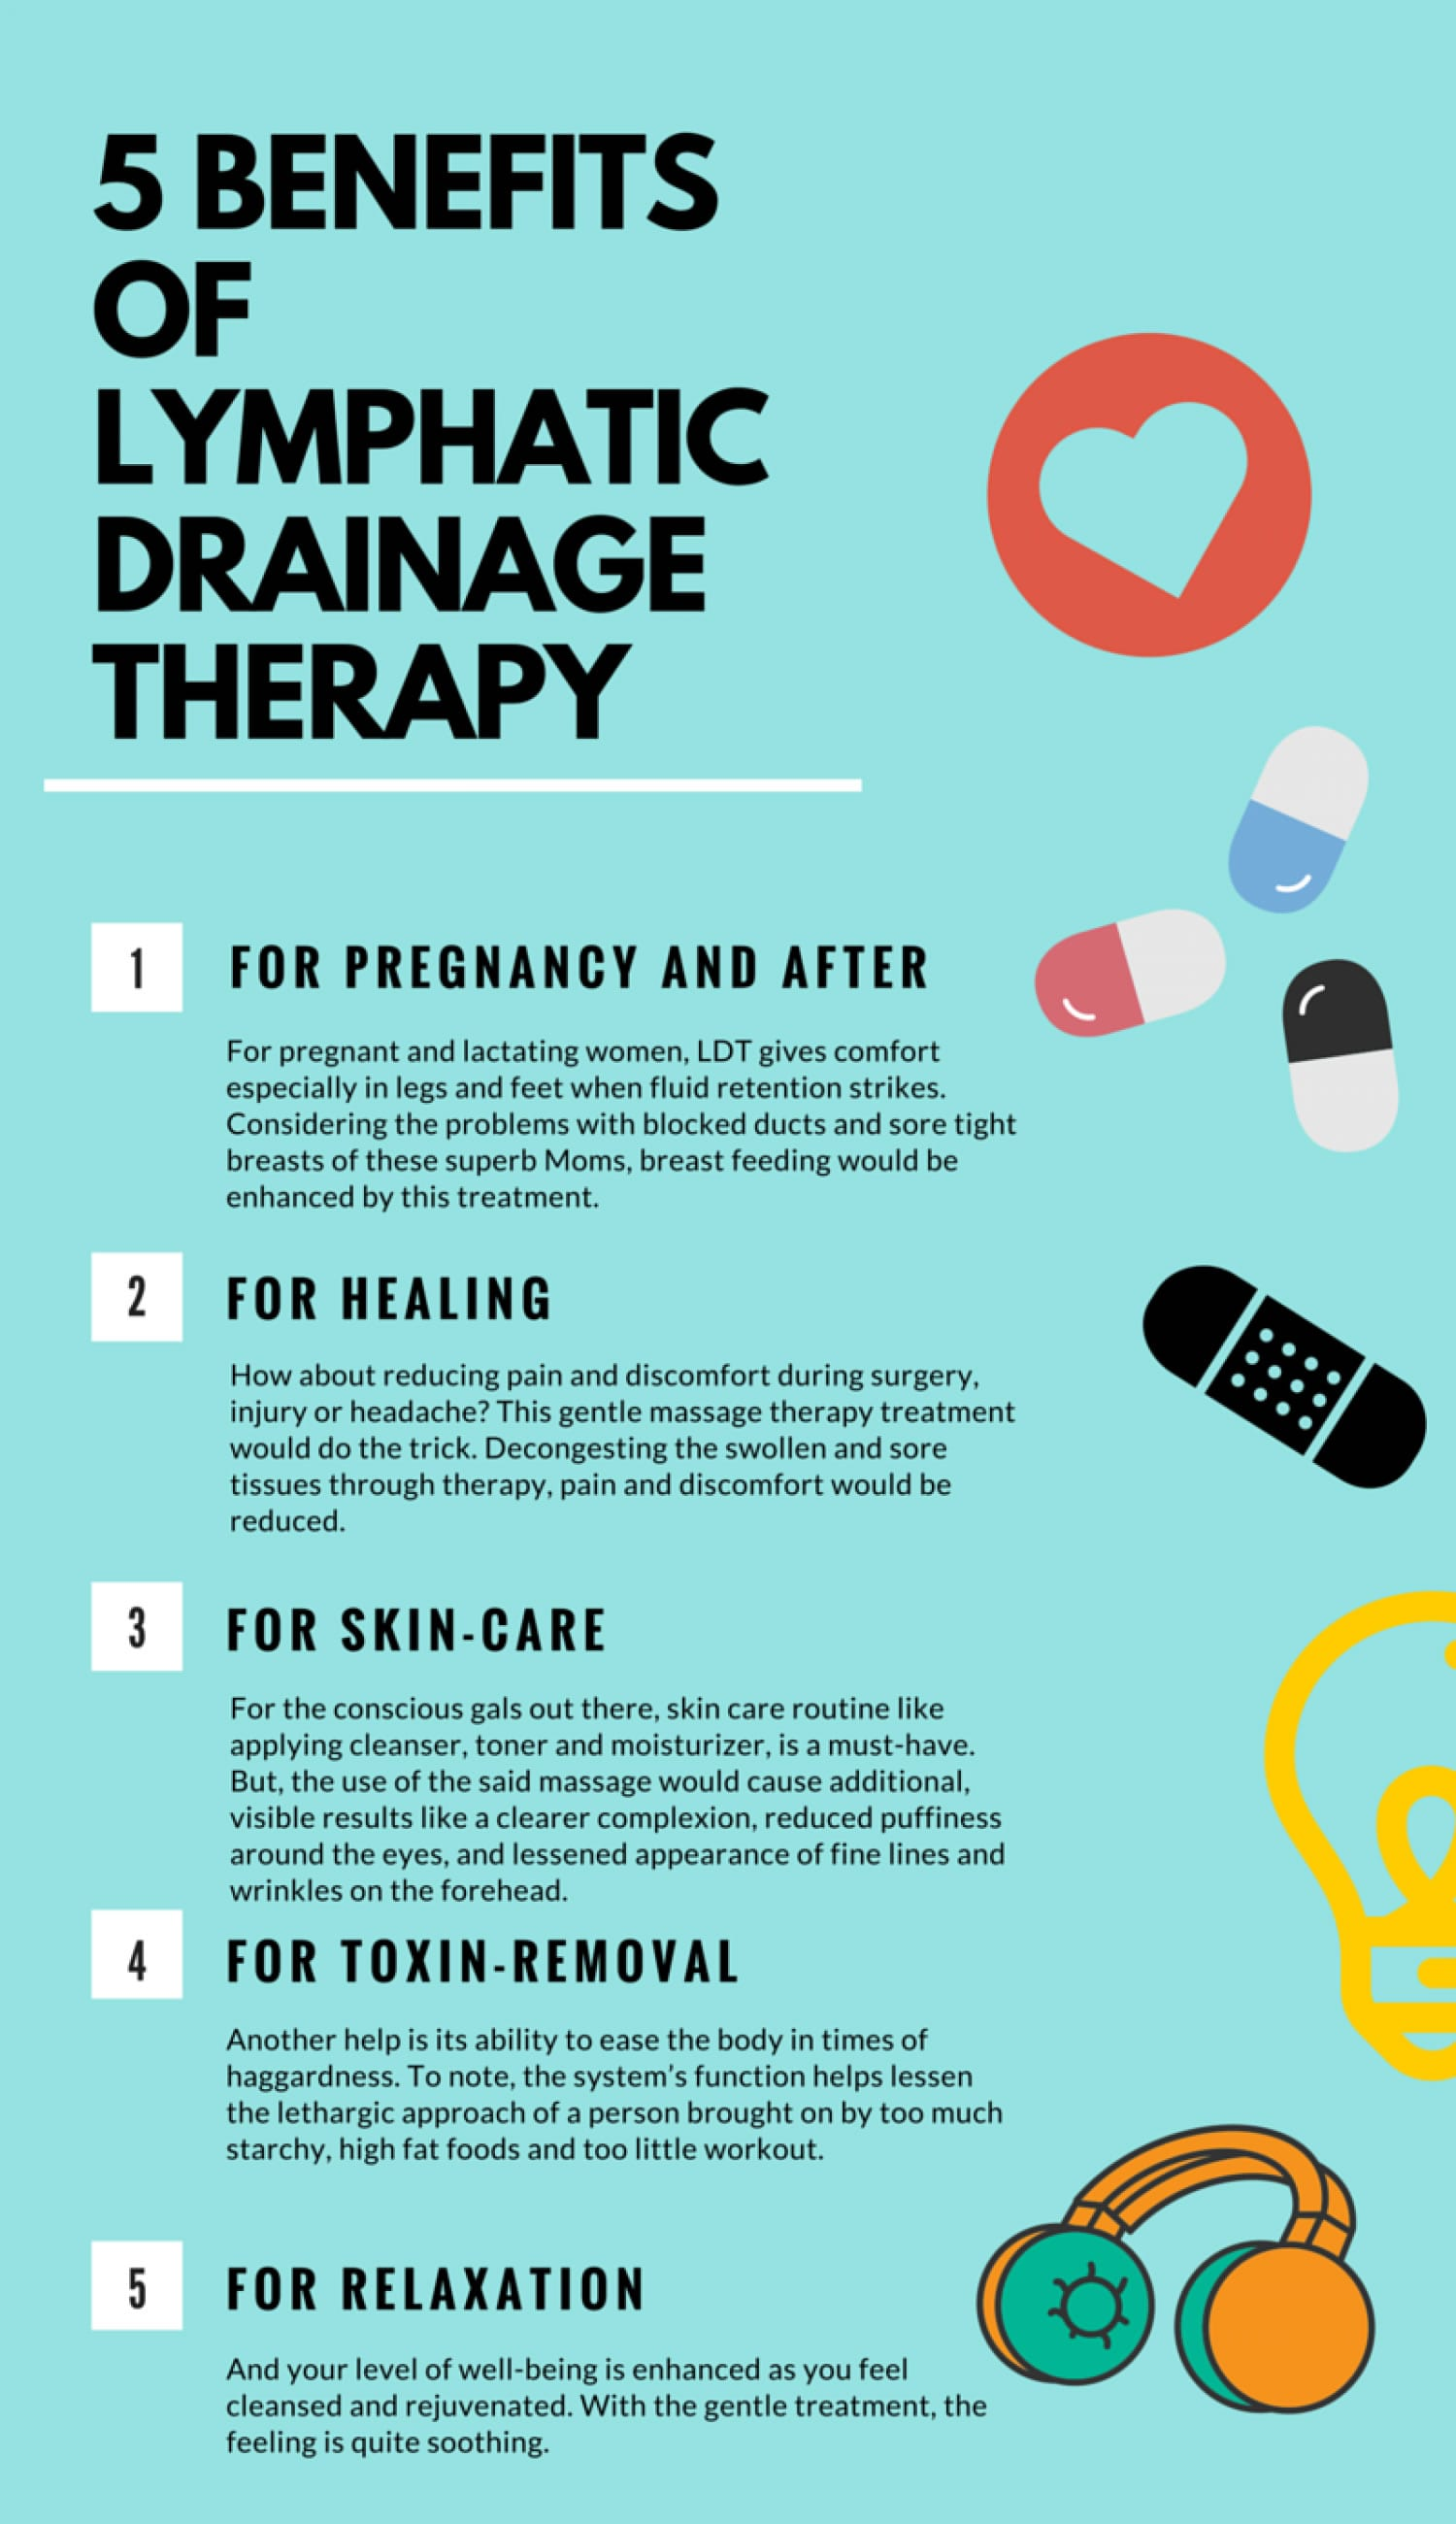 Chart showing the 5 benefits of Lymph Drainage Therapy